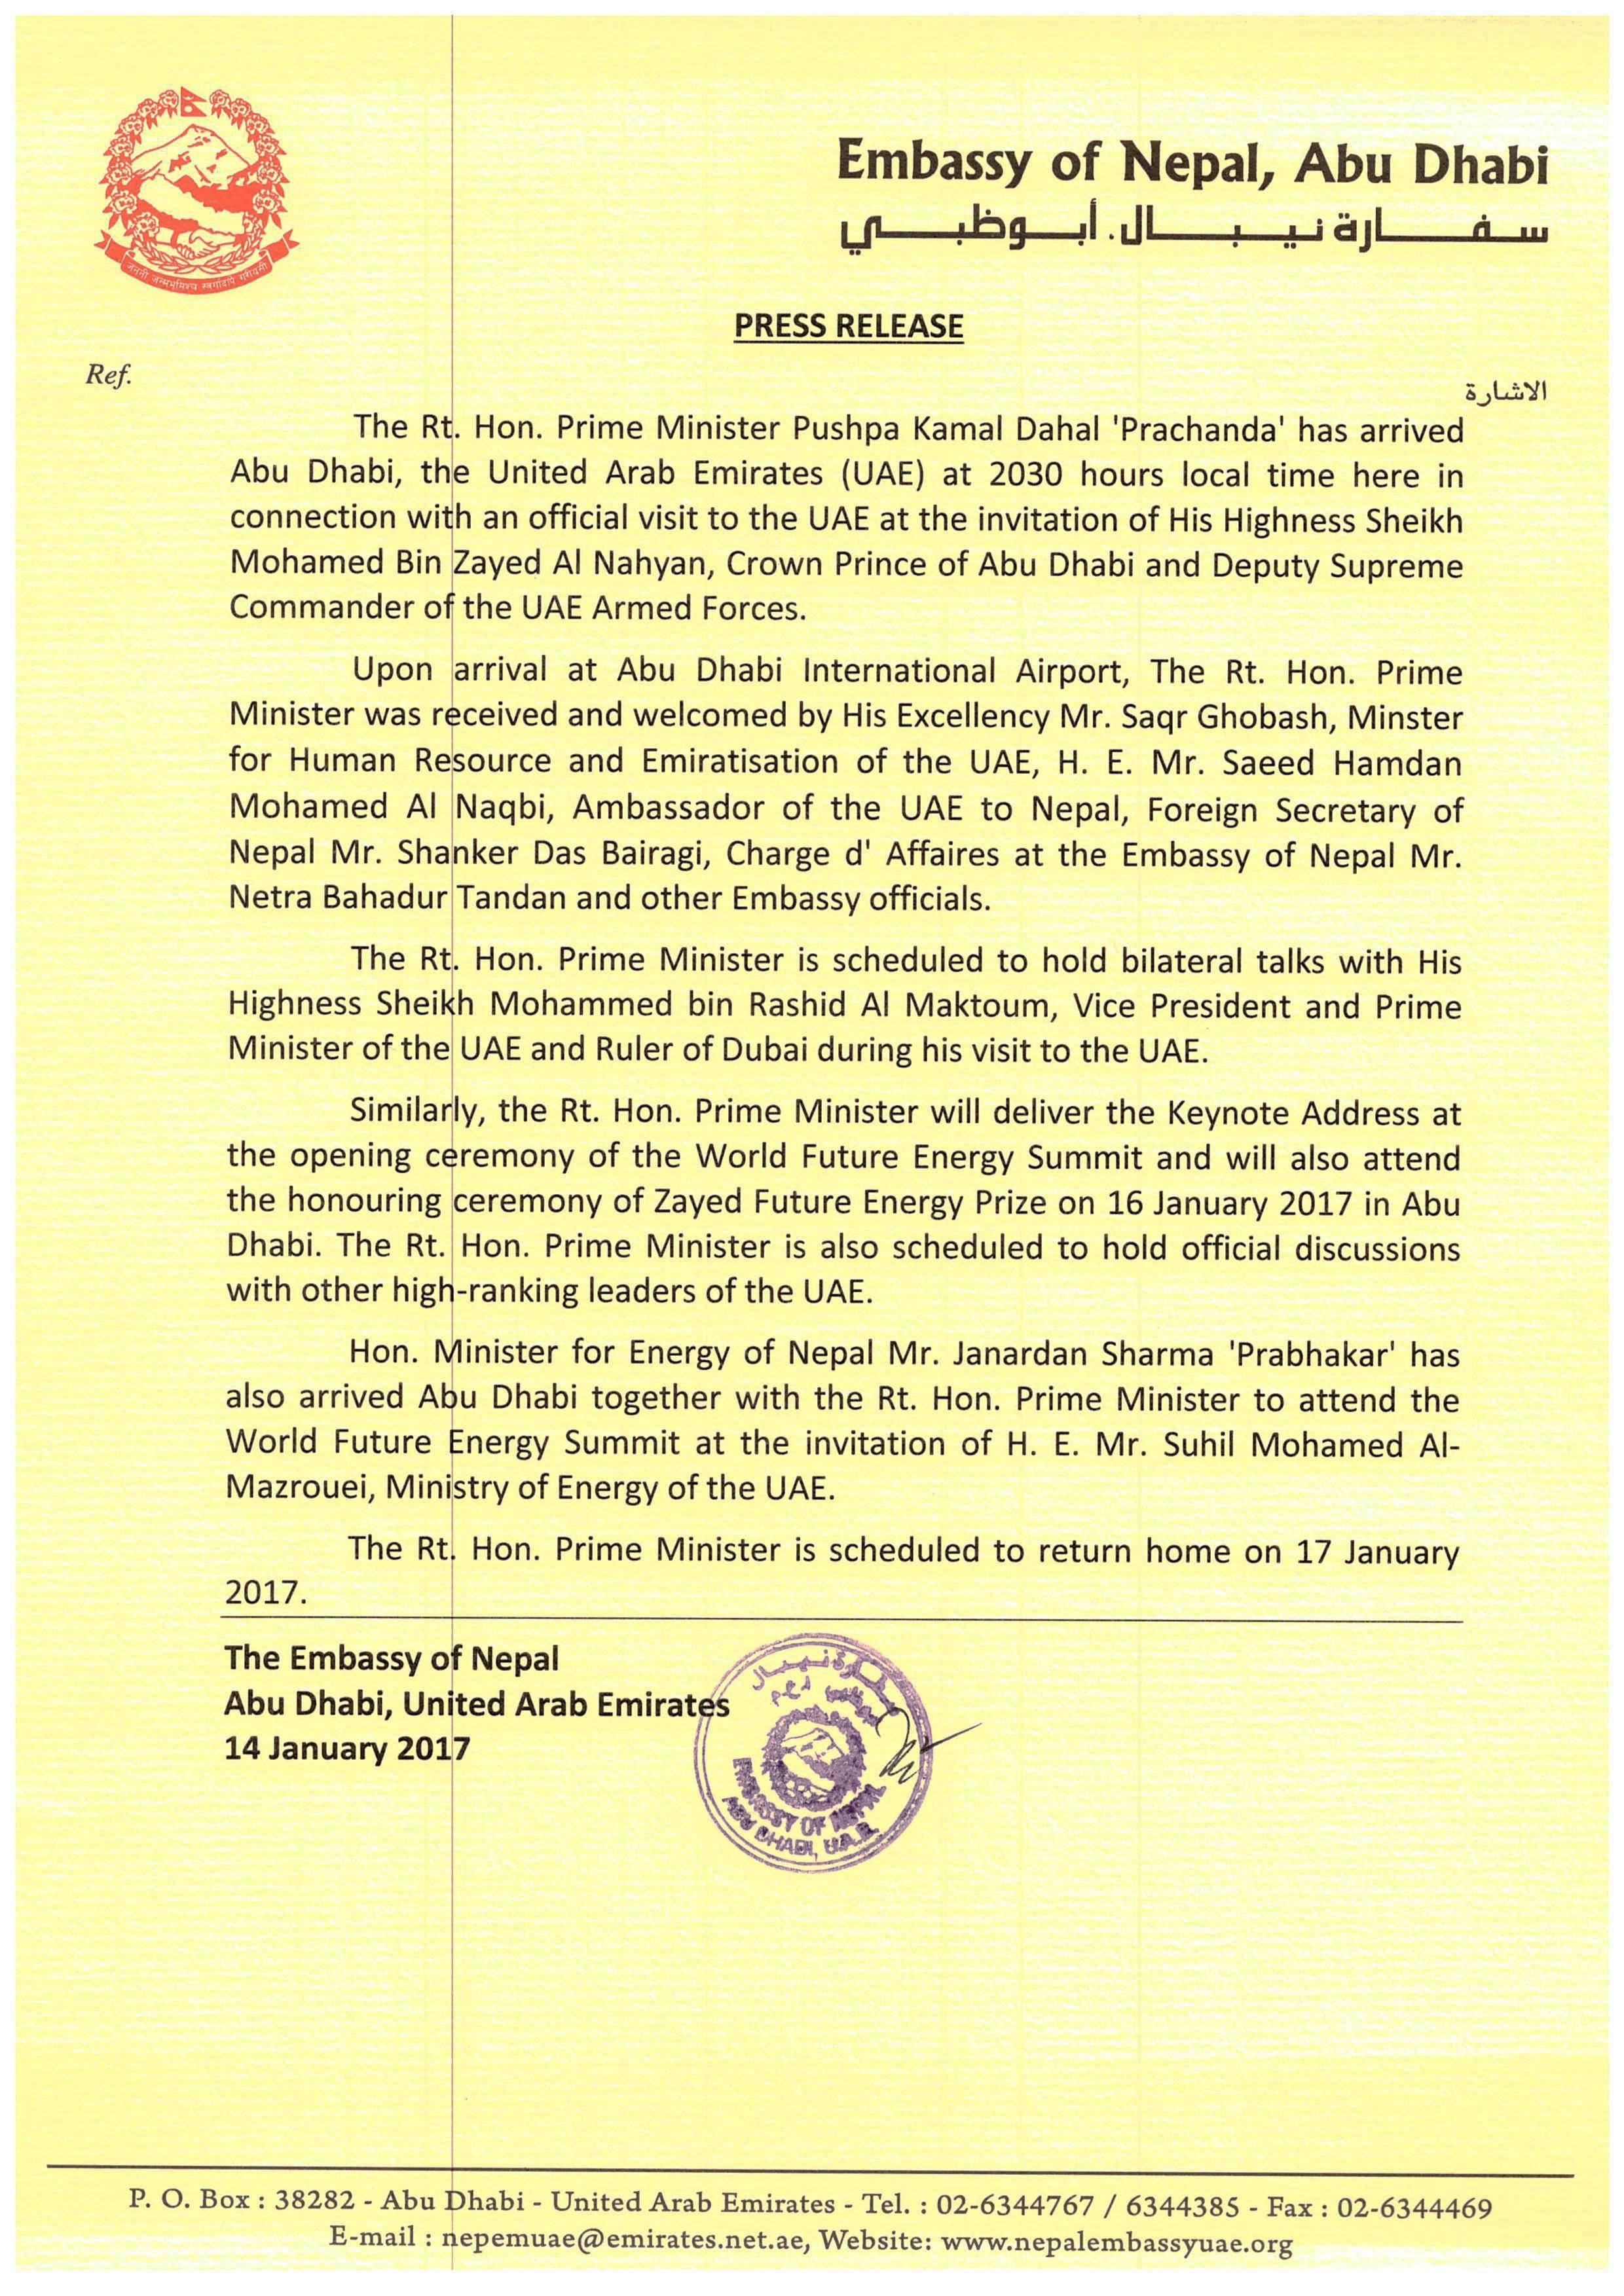 press released issued from Embassy of Nepal Abu Dhabi during the Official visit of Prime Minister to the UAE.